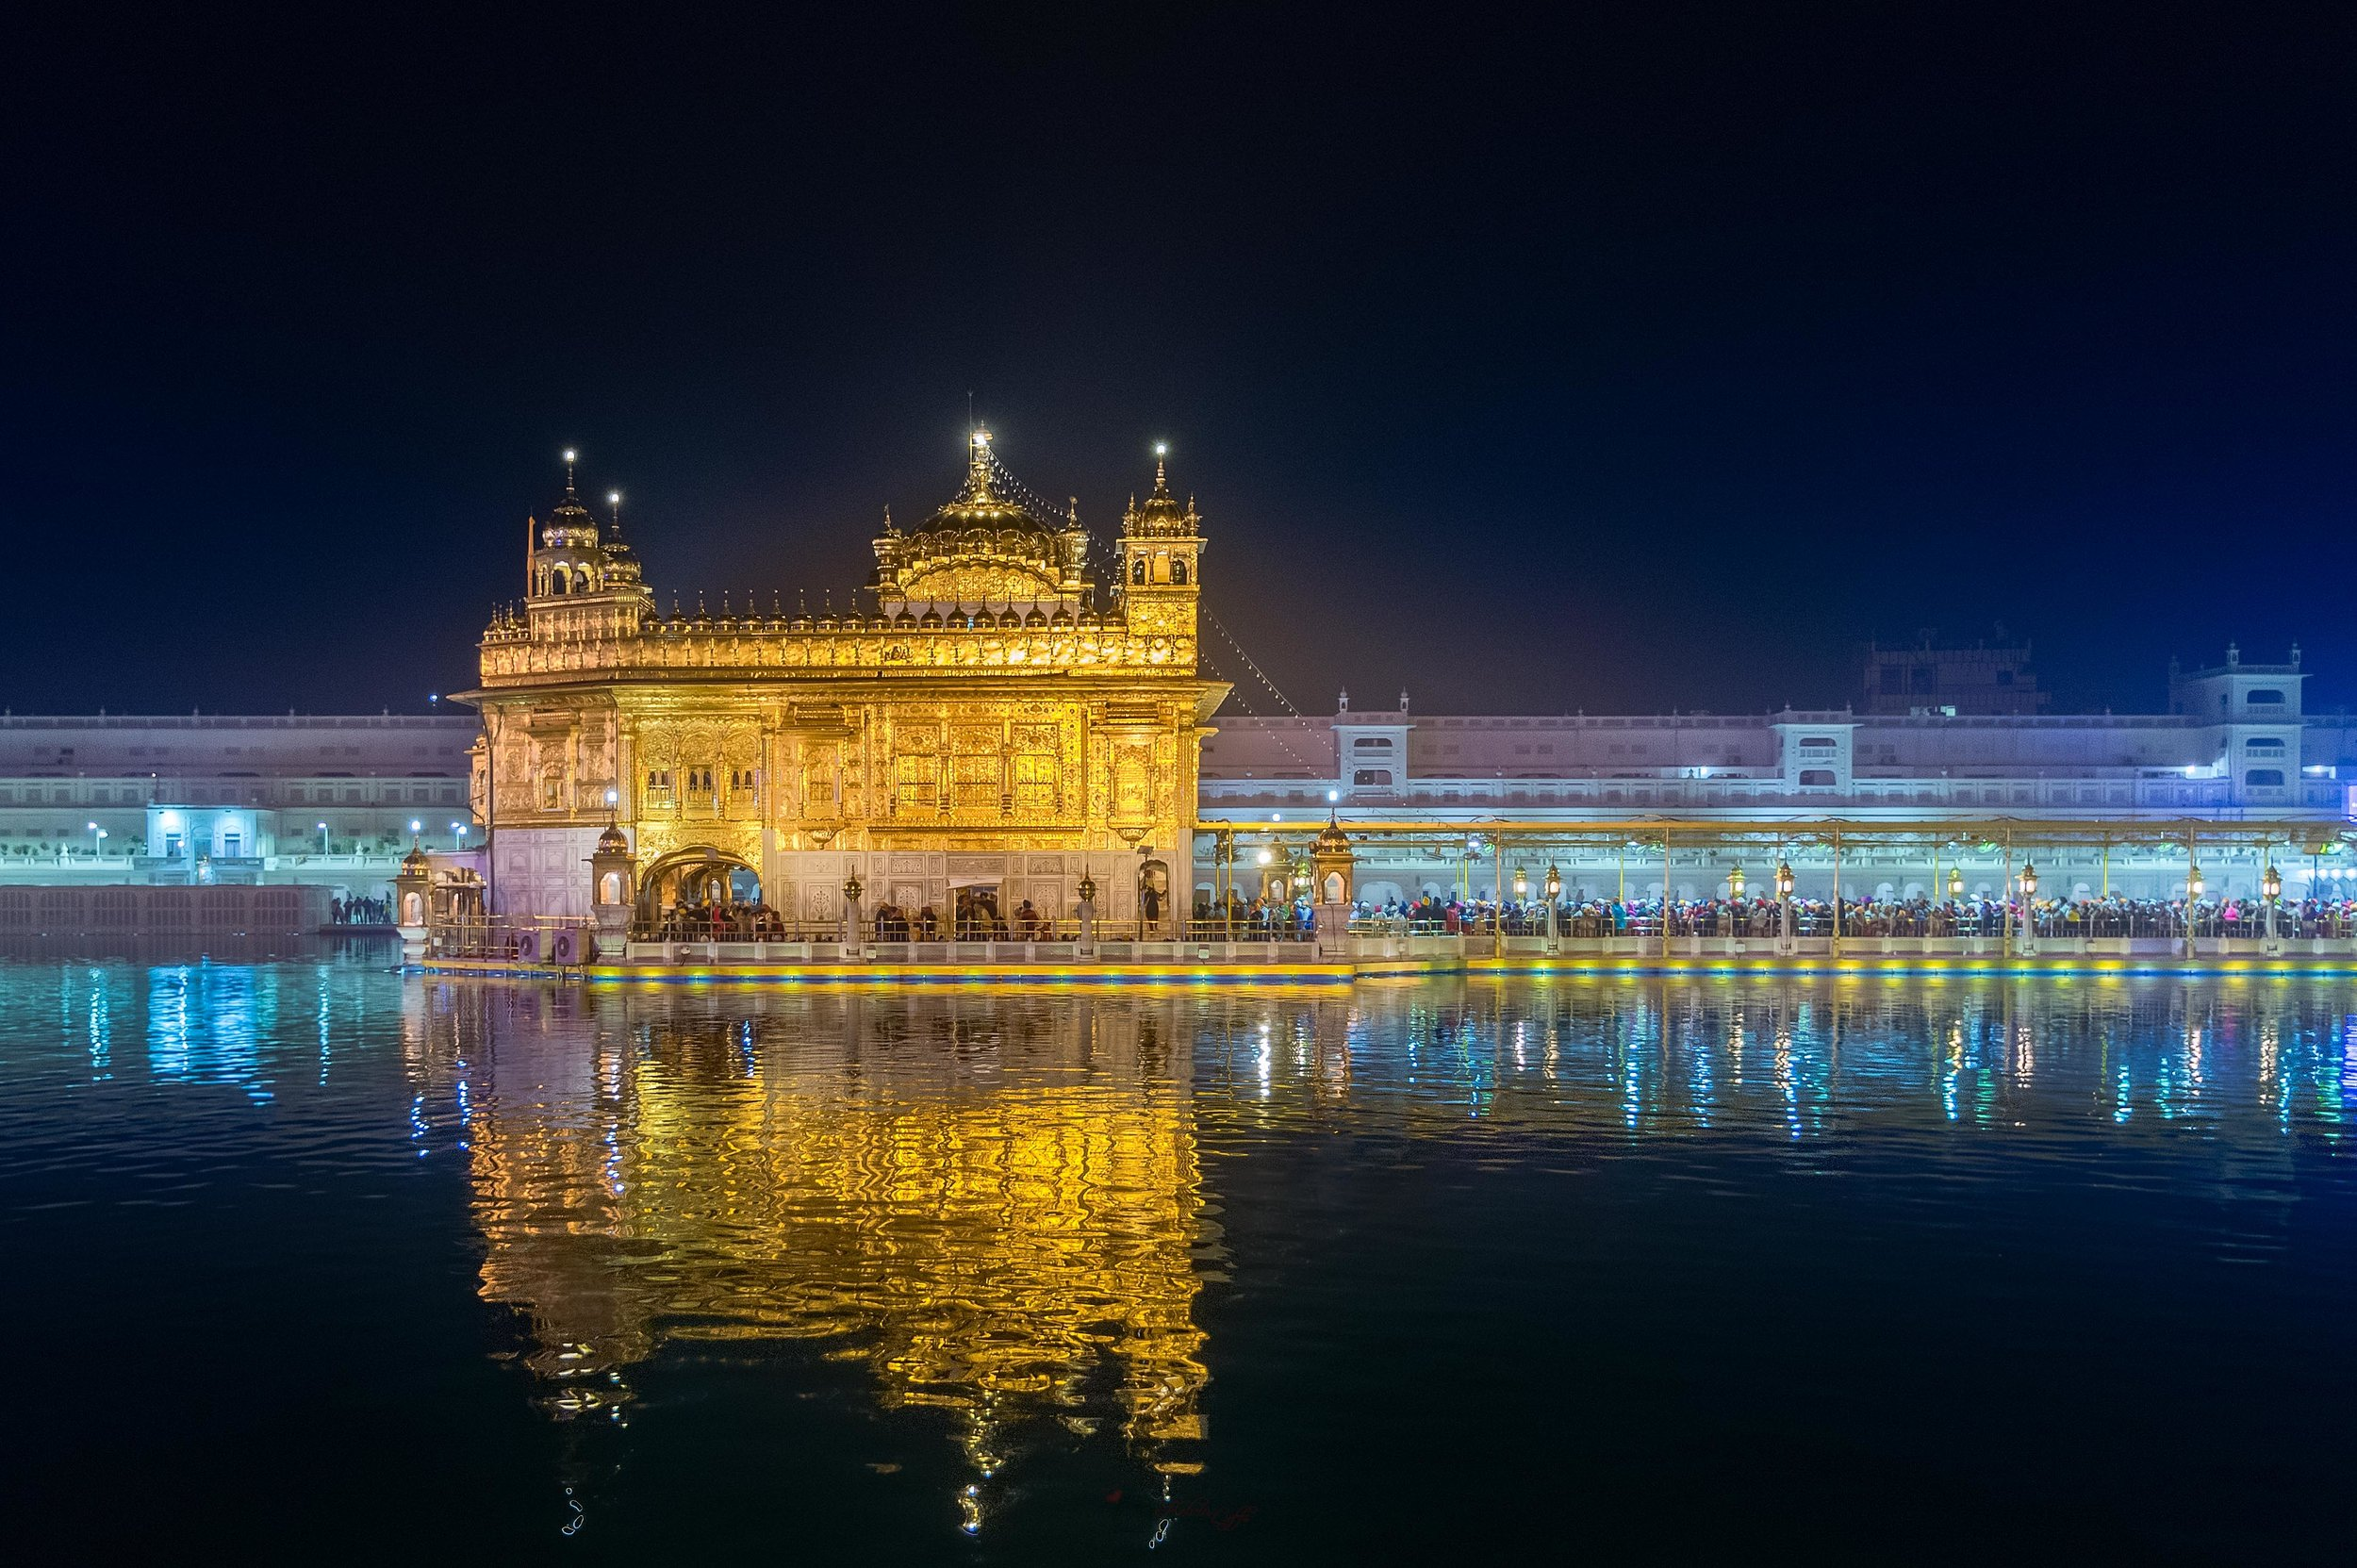 The first sight which caught my eye the moment i stepped into the Temple. I just can't take my eyes away from it. The Harmandir Sahib (The abode of God) floating on top of the Amrit Sarovar (sacred pool).